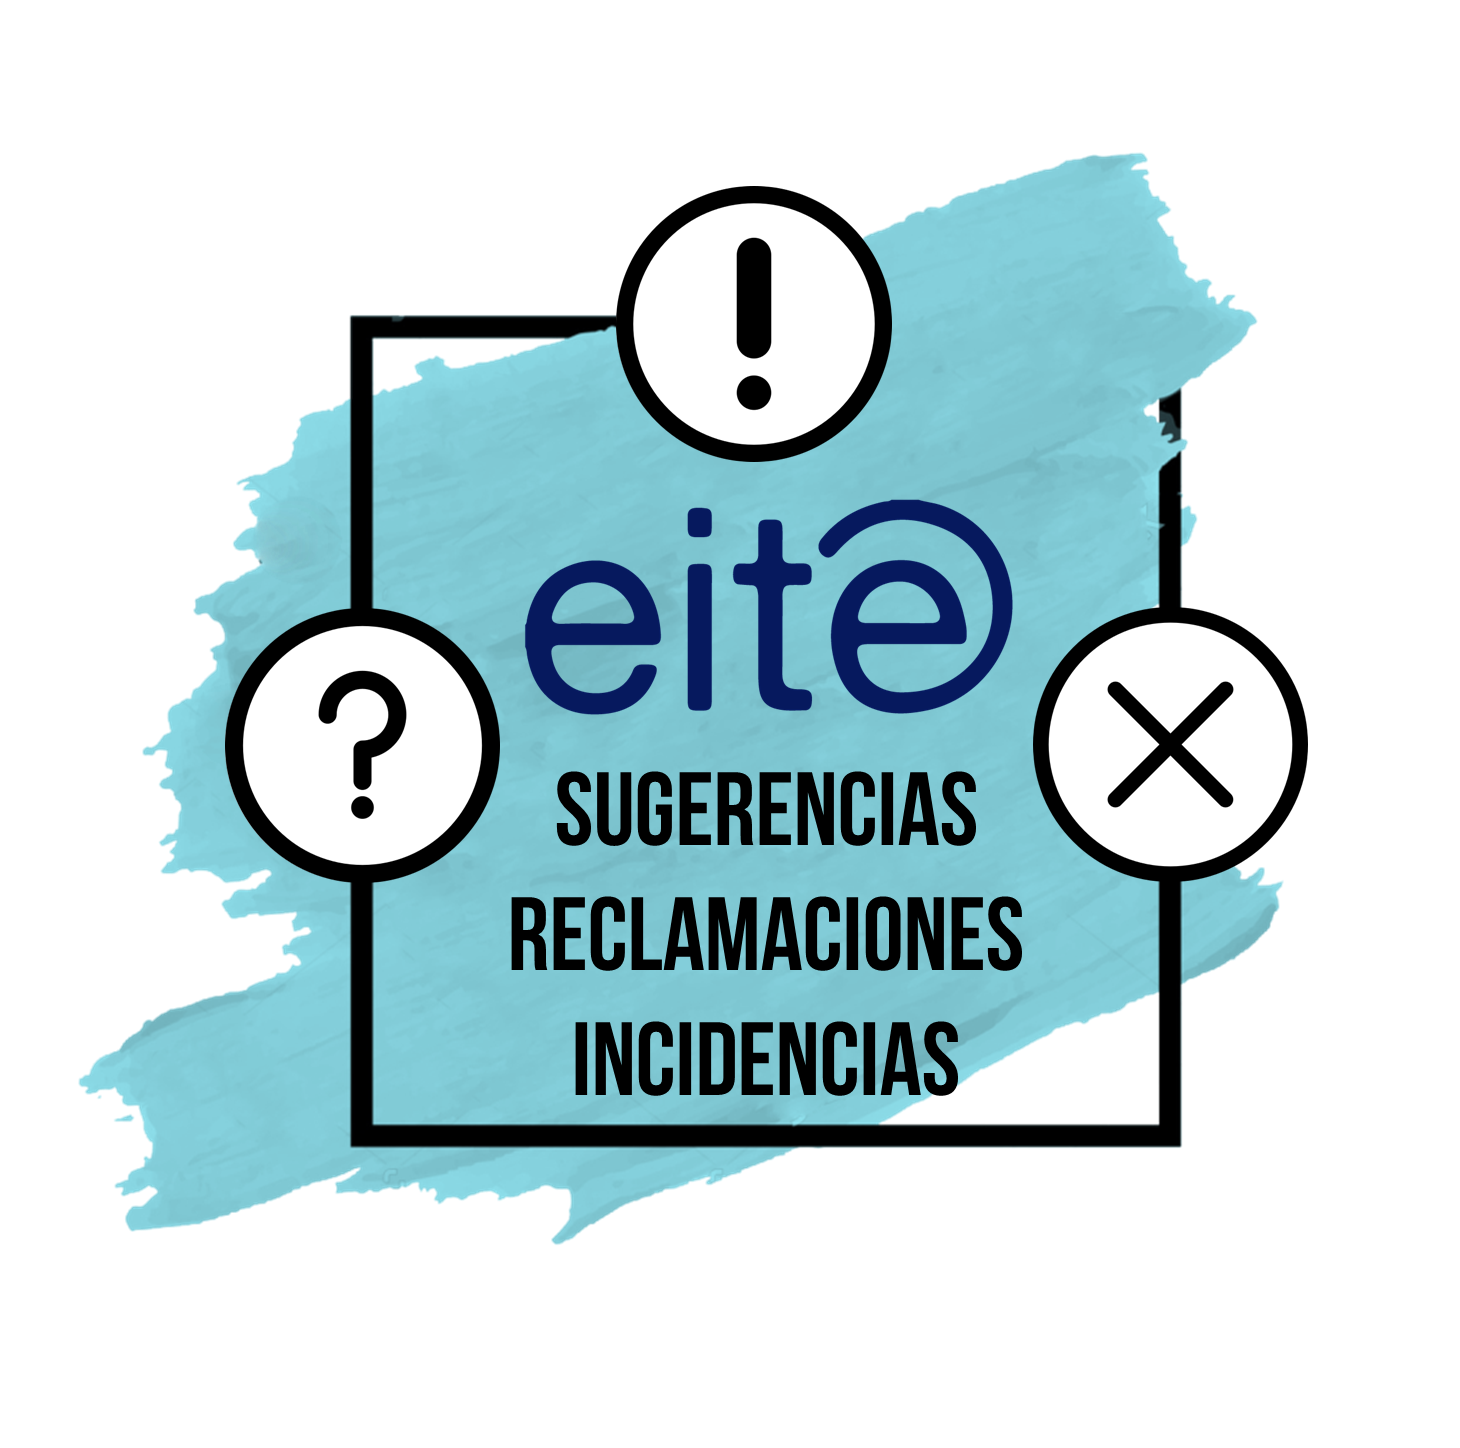 Sugerencias-Reclamaciones-Incidencias